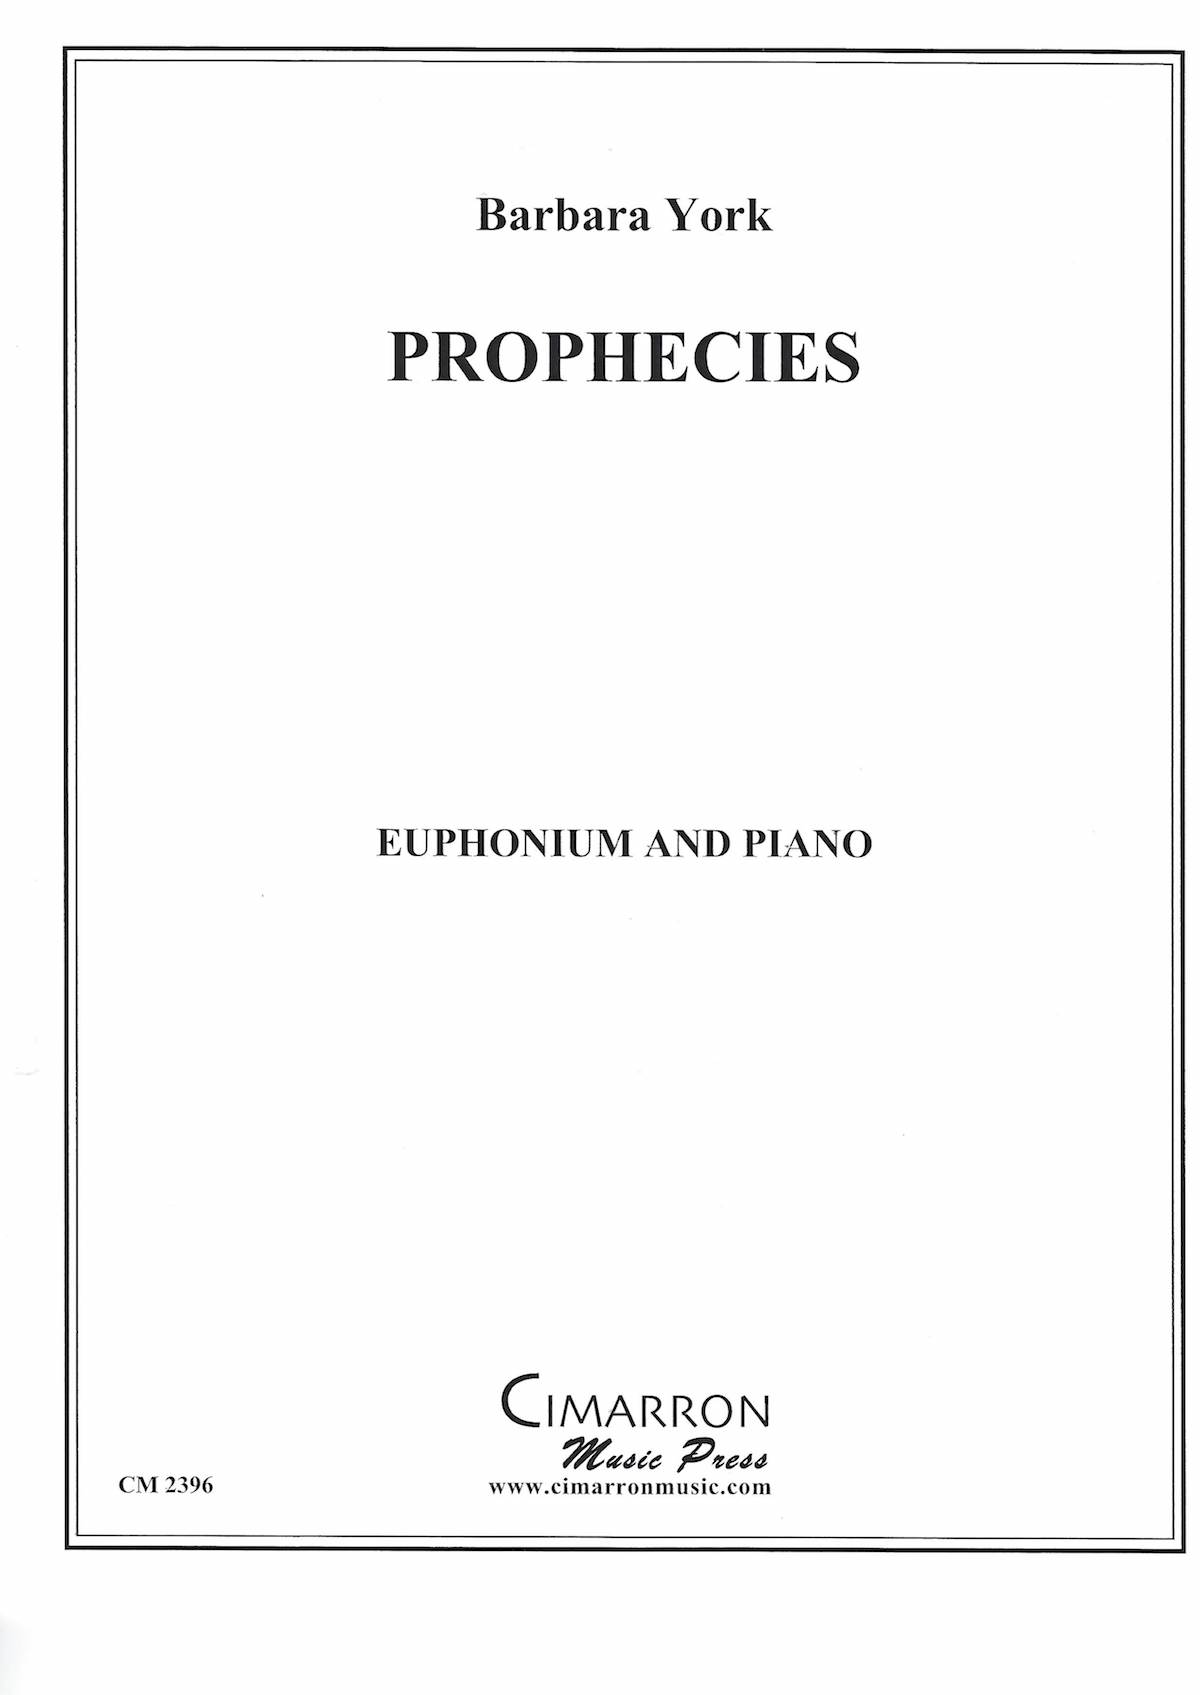 Prophecies - Barbara York - Euphonium and Piano